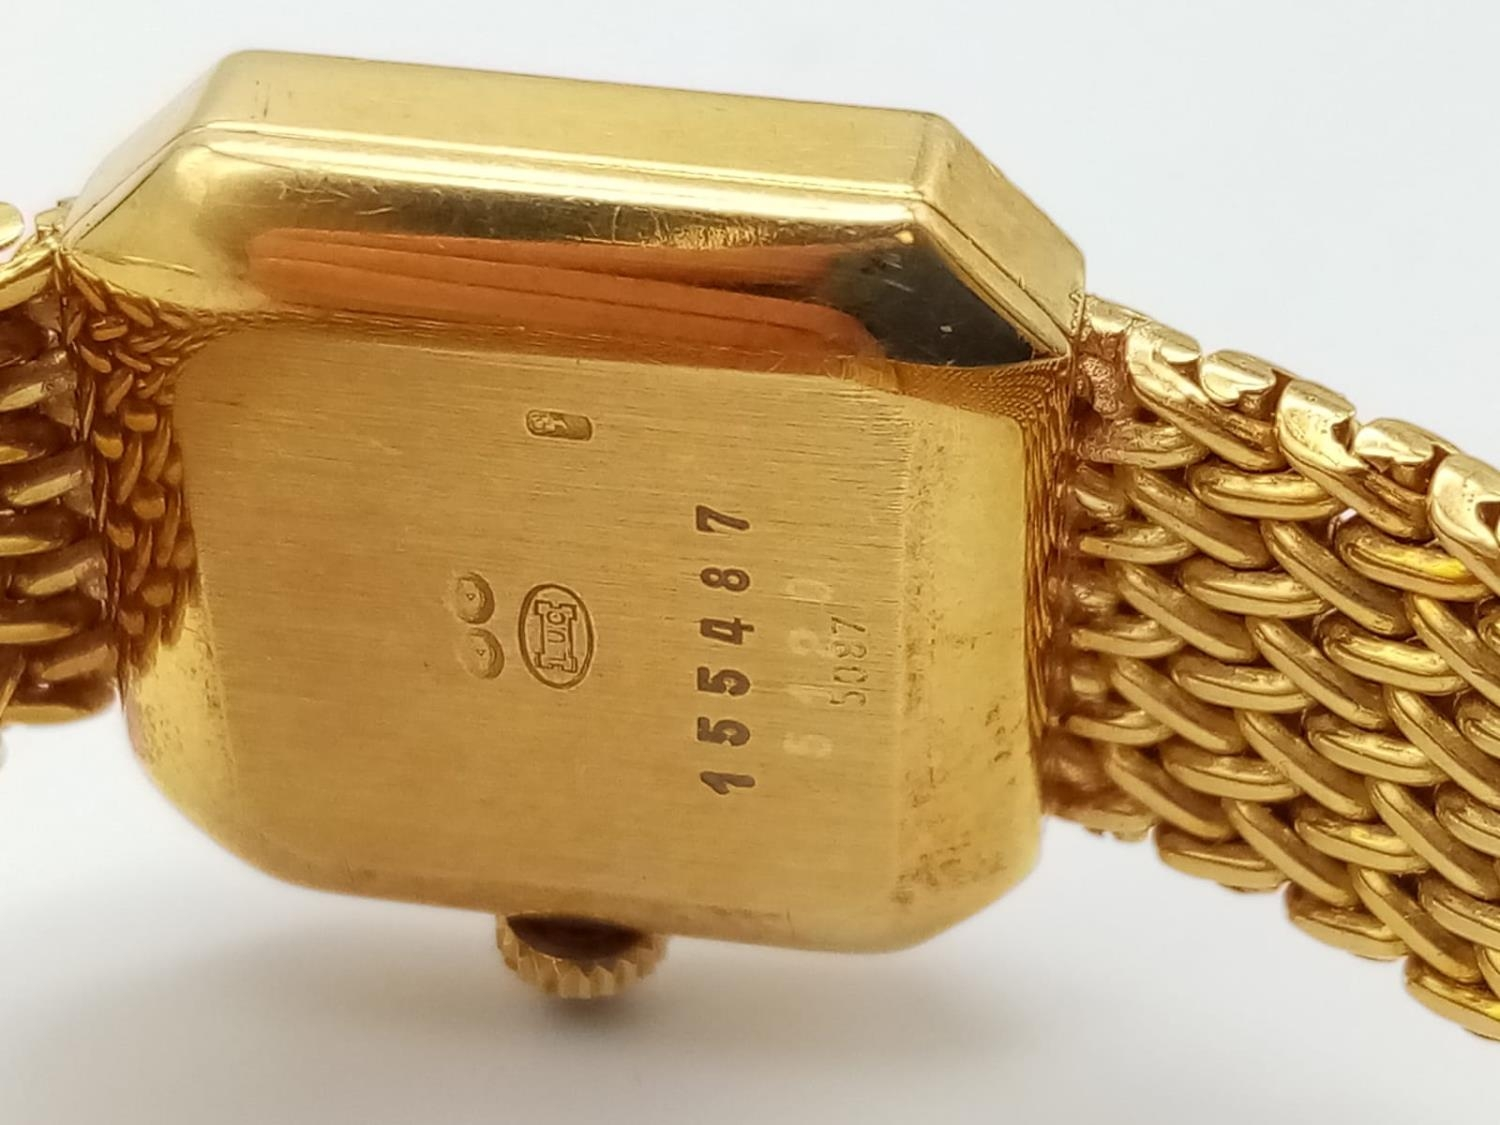 18K GOLD DRESS WATCH BY CHOPARD OF GENEVA WITH DIAMOND BEZEL AND SOLID GOLD STRAP. 20MM - Image 6 of 9